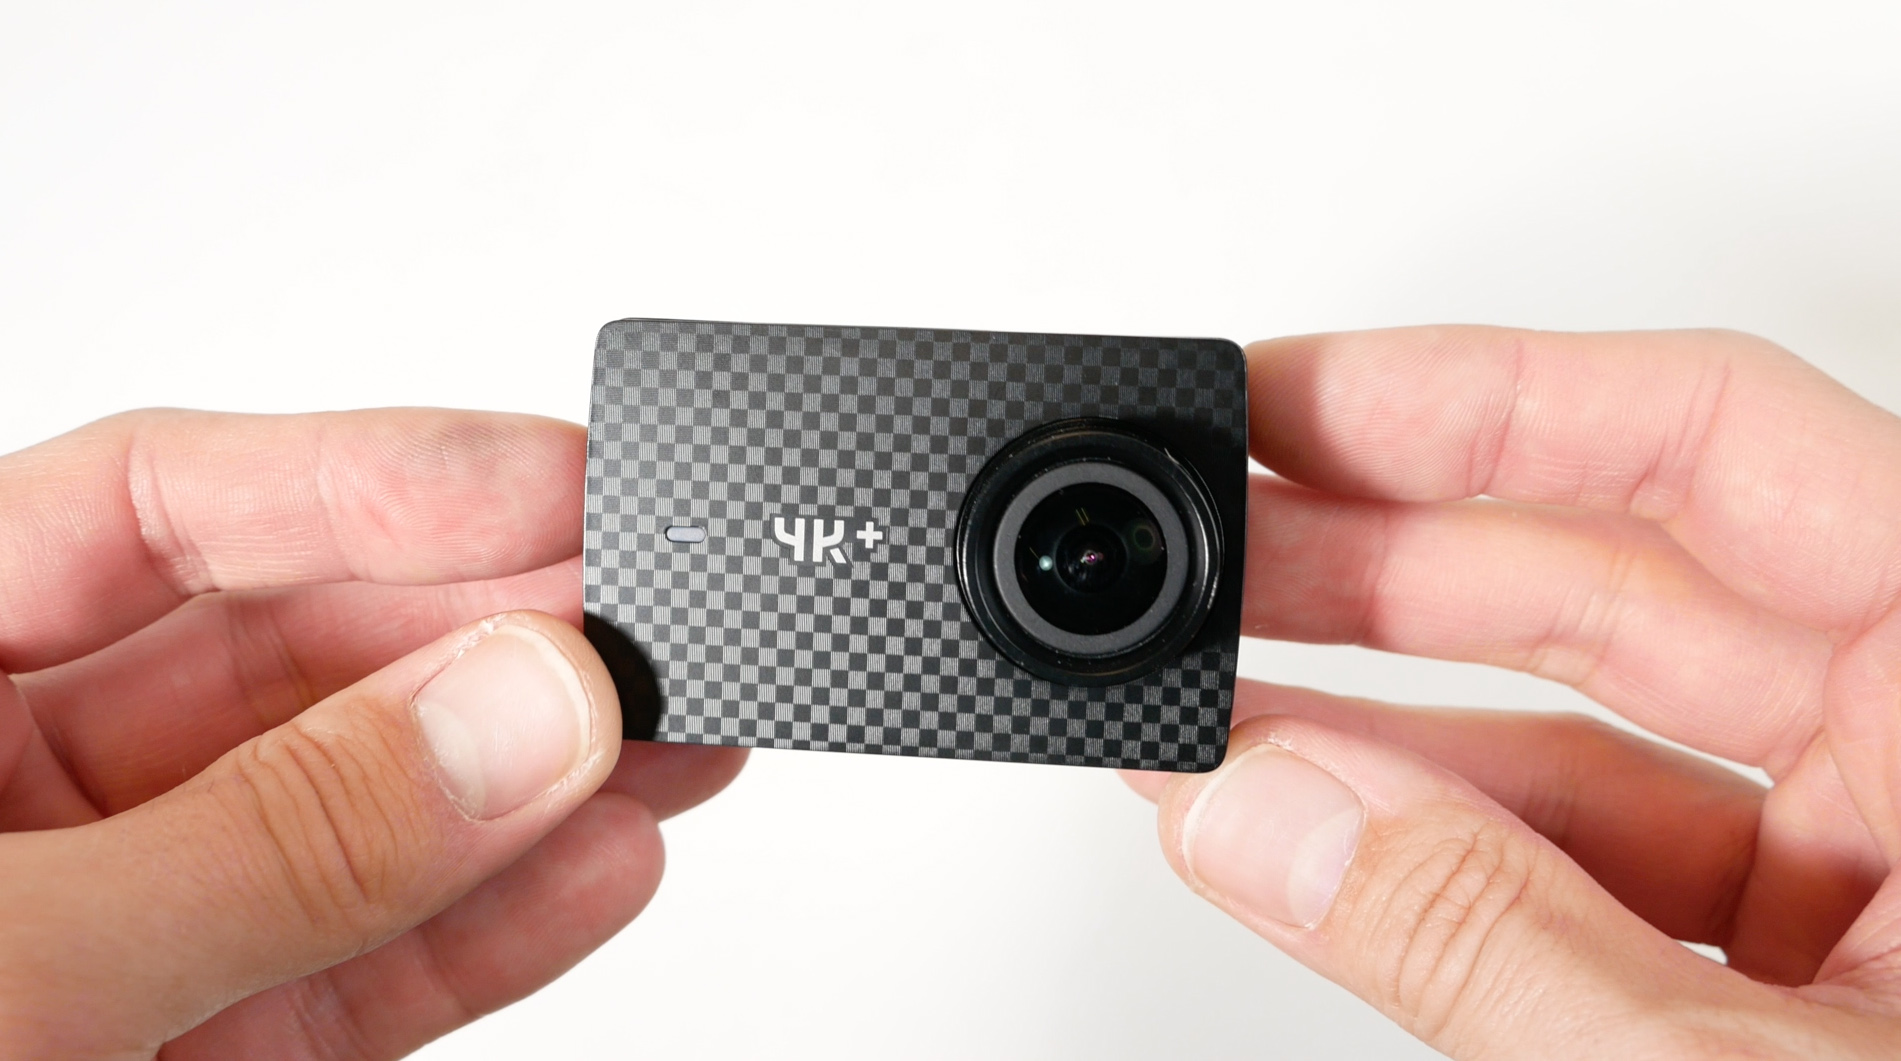 First look video: YI 4K+ action camera shoots 4K/60p and